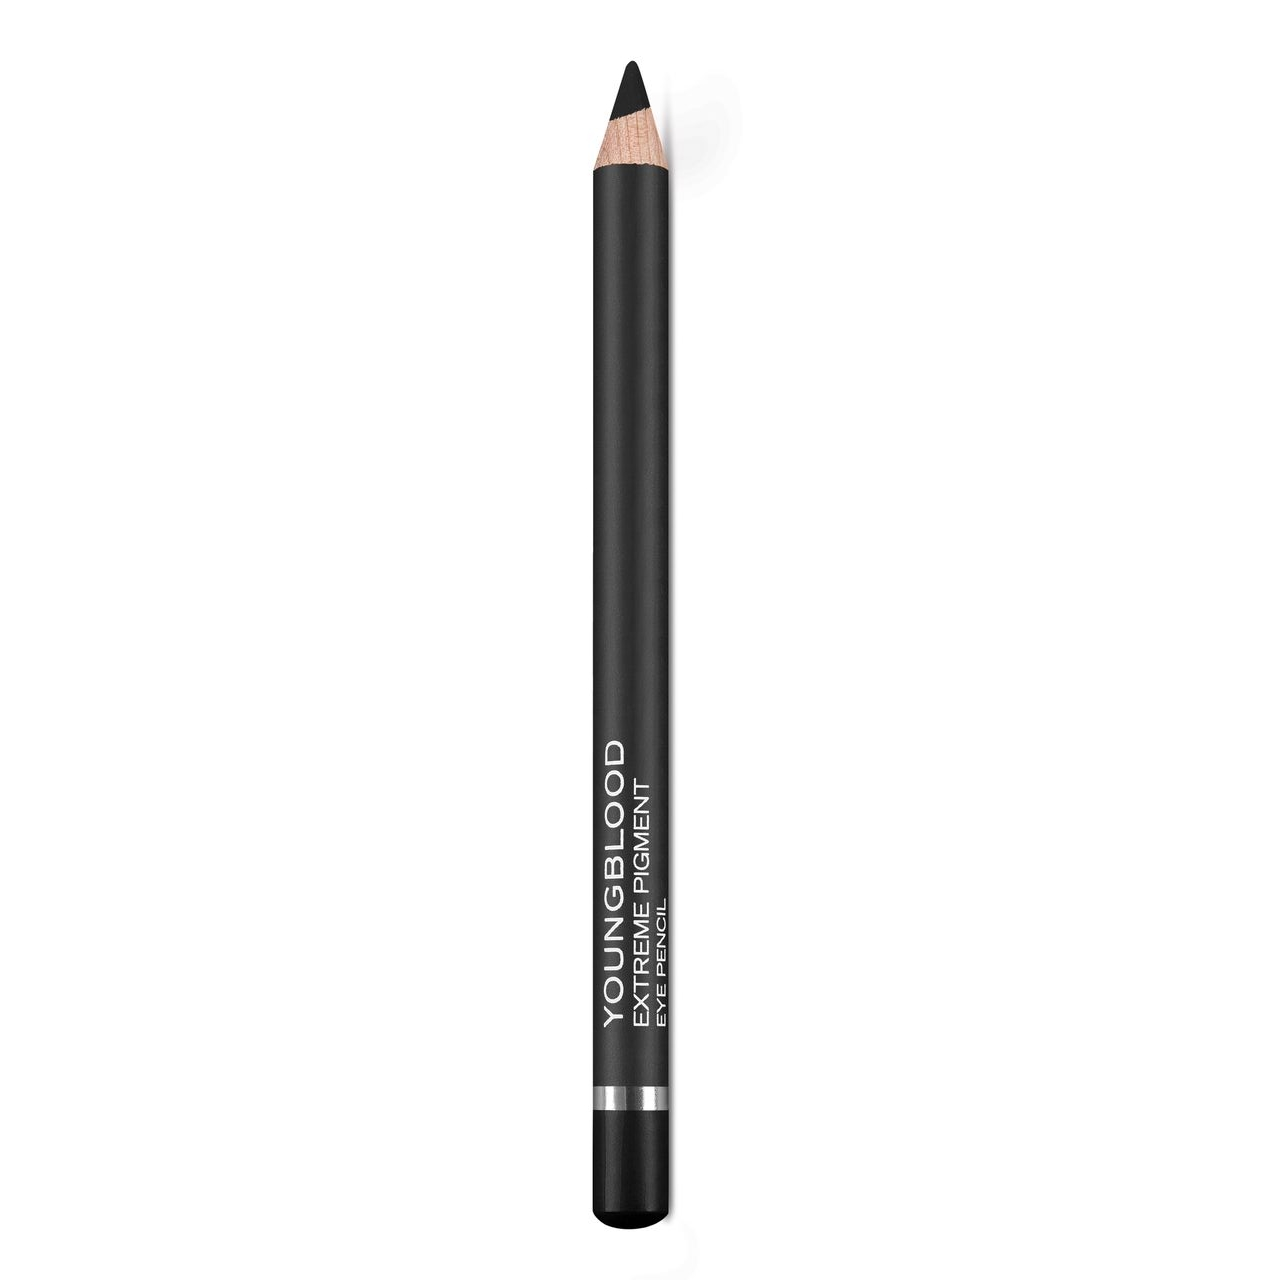 YOUNGBLOOD - Extreme Pigment Eye Pencil - Black